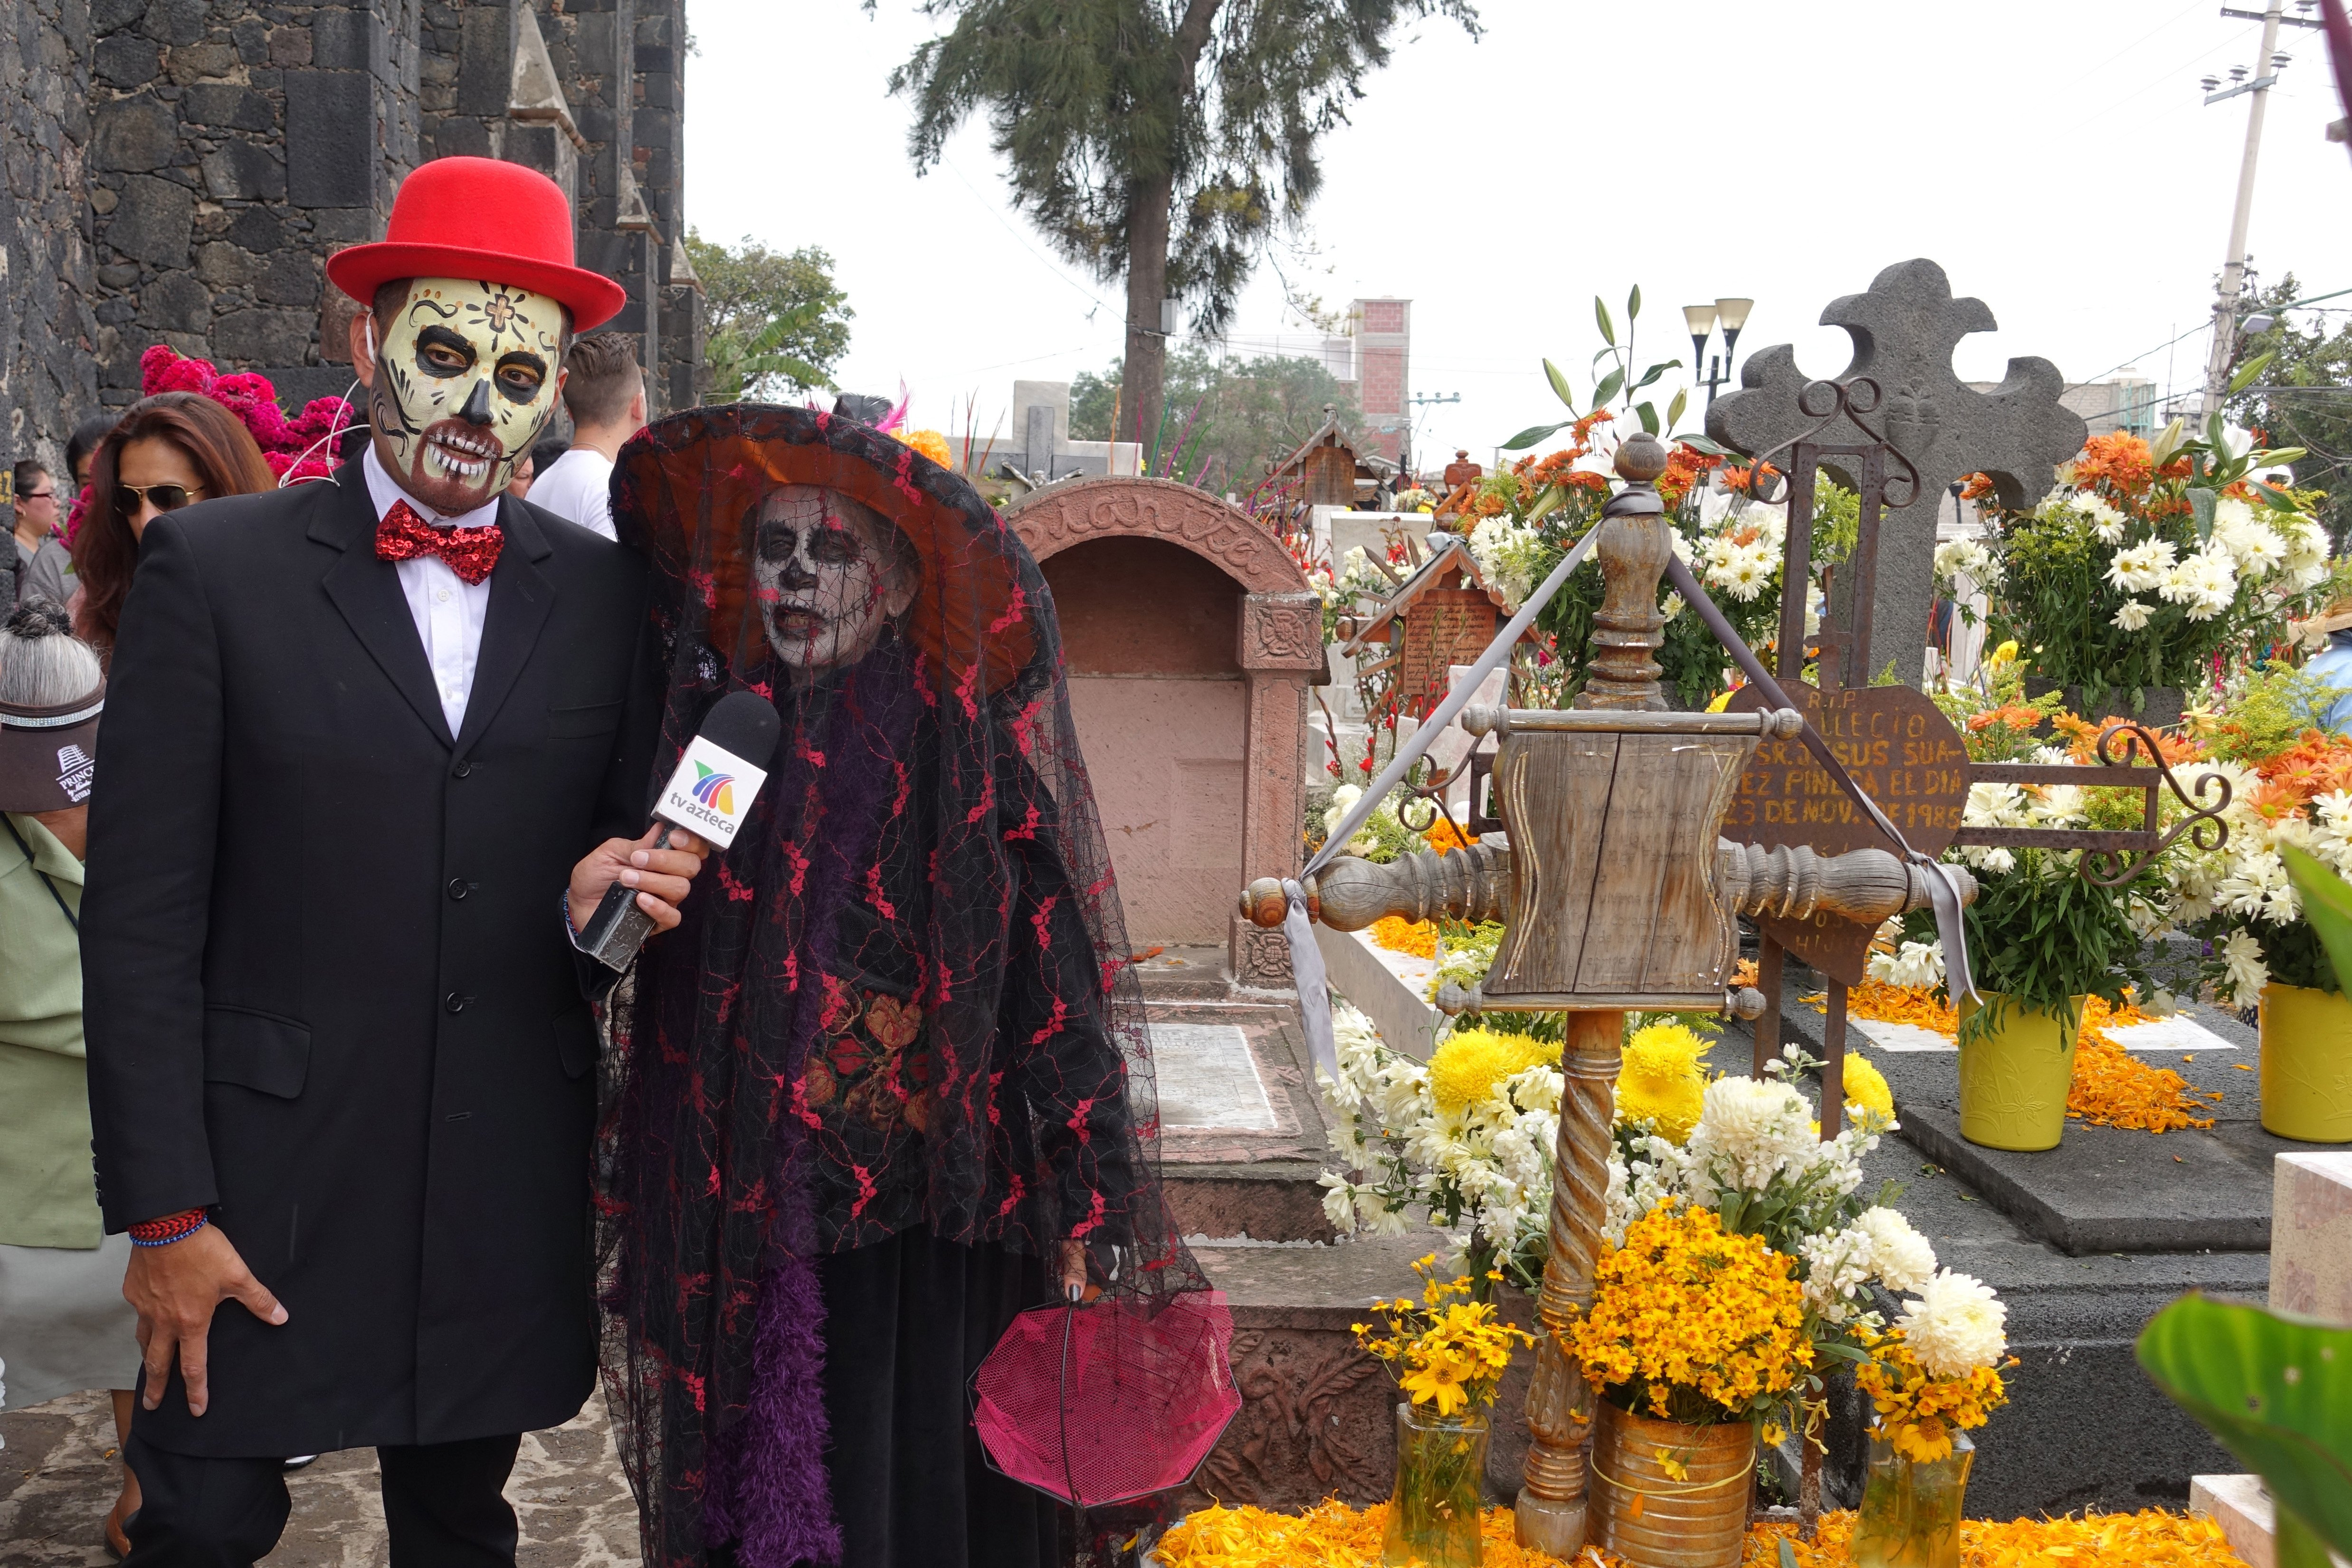 Day of the dead mixquic - a local news crew in full costume